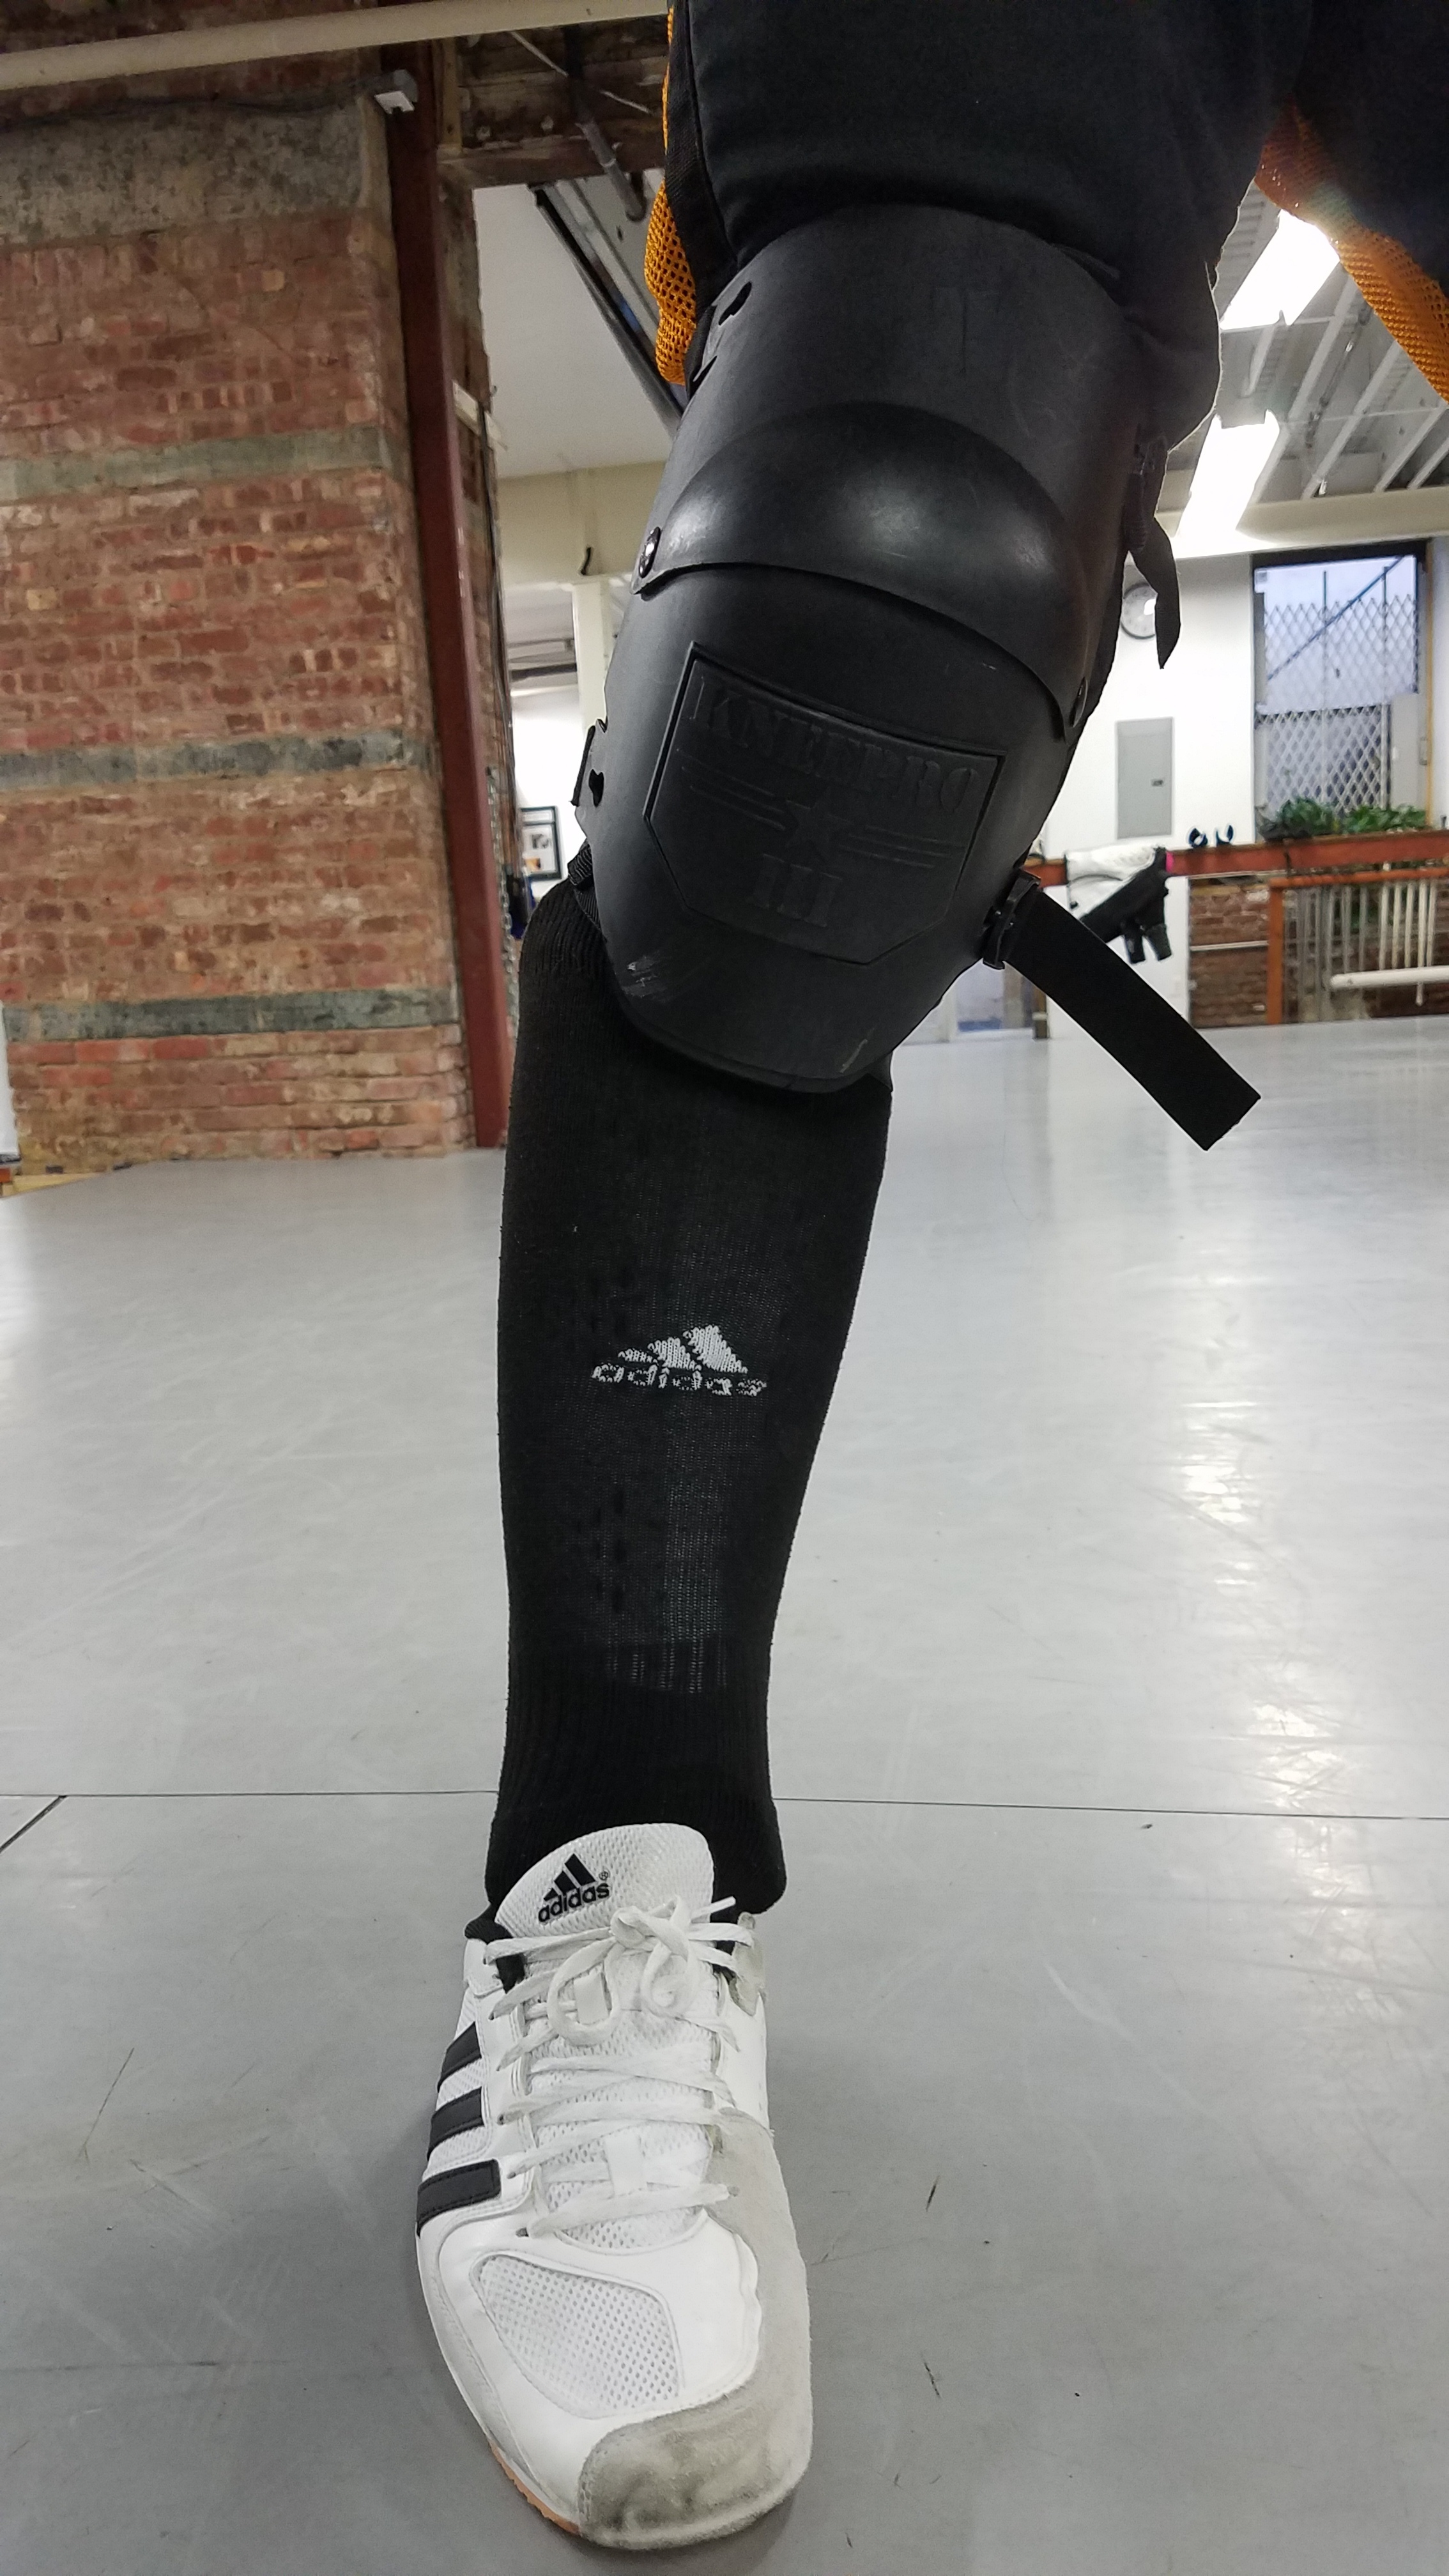 Editor: for a fully wrap-around shin guard with ankle protection, these have a shockingly slim profile under the sock.